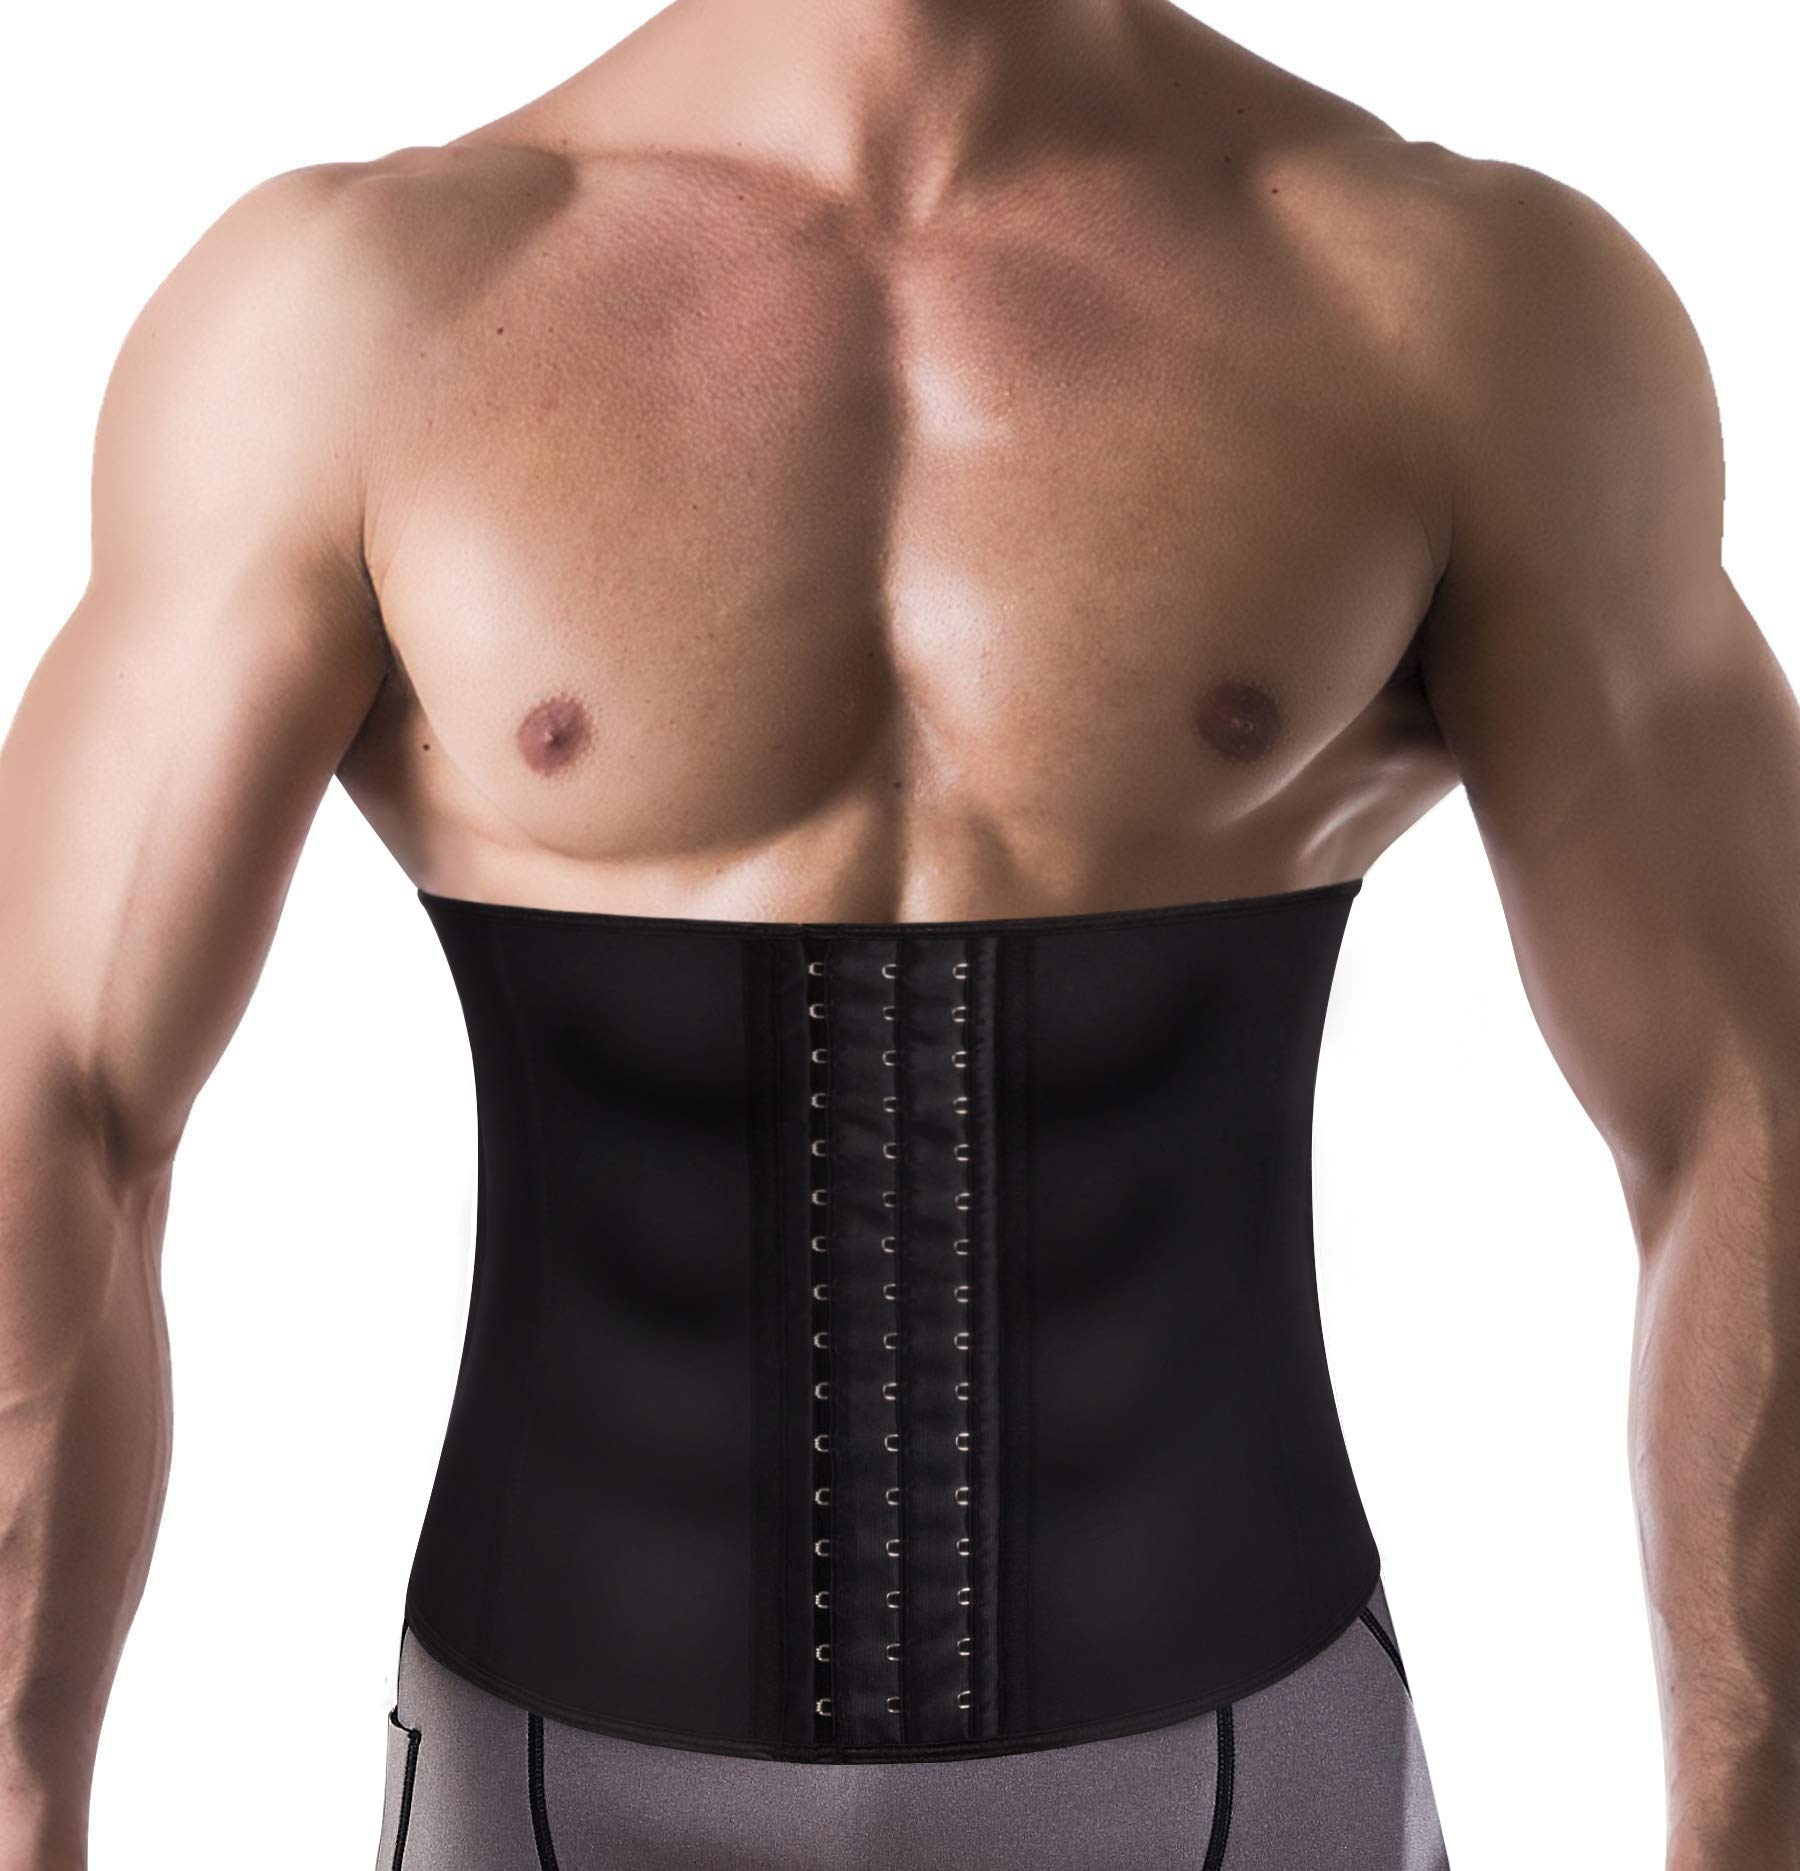 2e2f416d97 Wonderience Men Waist Trainer Slimming Body Shaper Belt Support Underwear  Sweat Weight Loss Corset product image